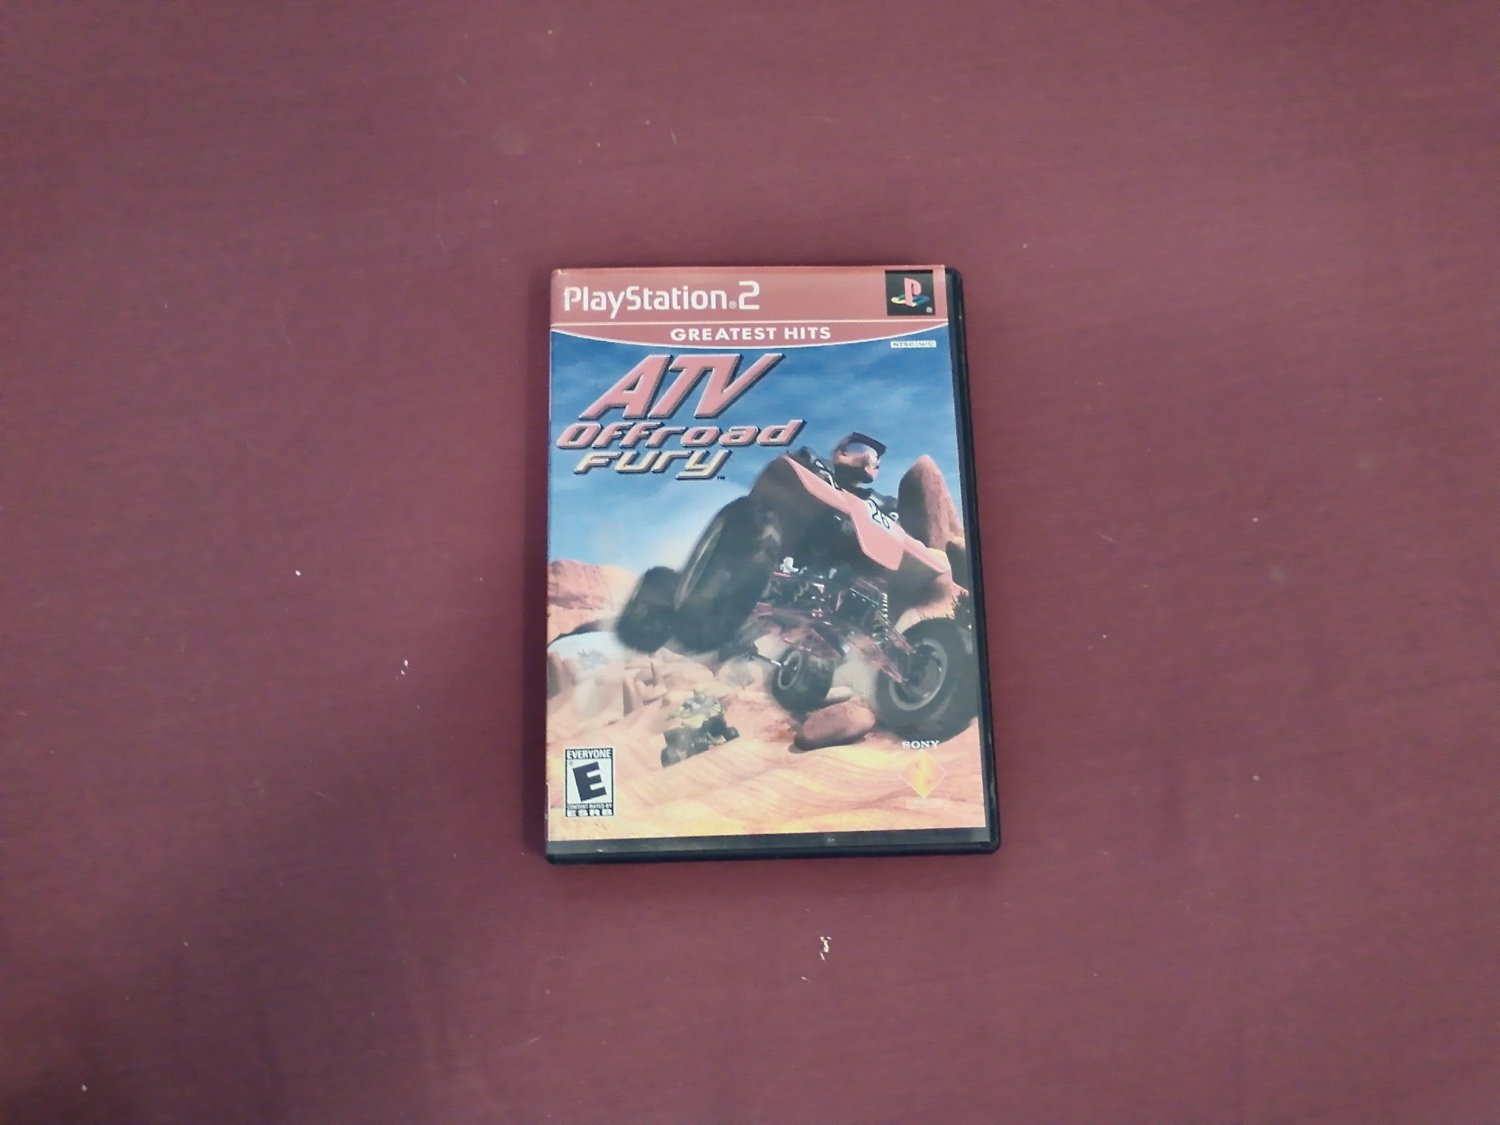 ATV Offroad Fury PS2 PlayStation 2, Rated E 2001 Sony DVD Game (mw)